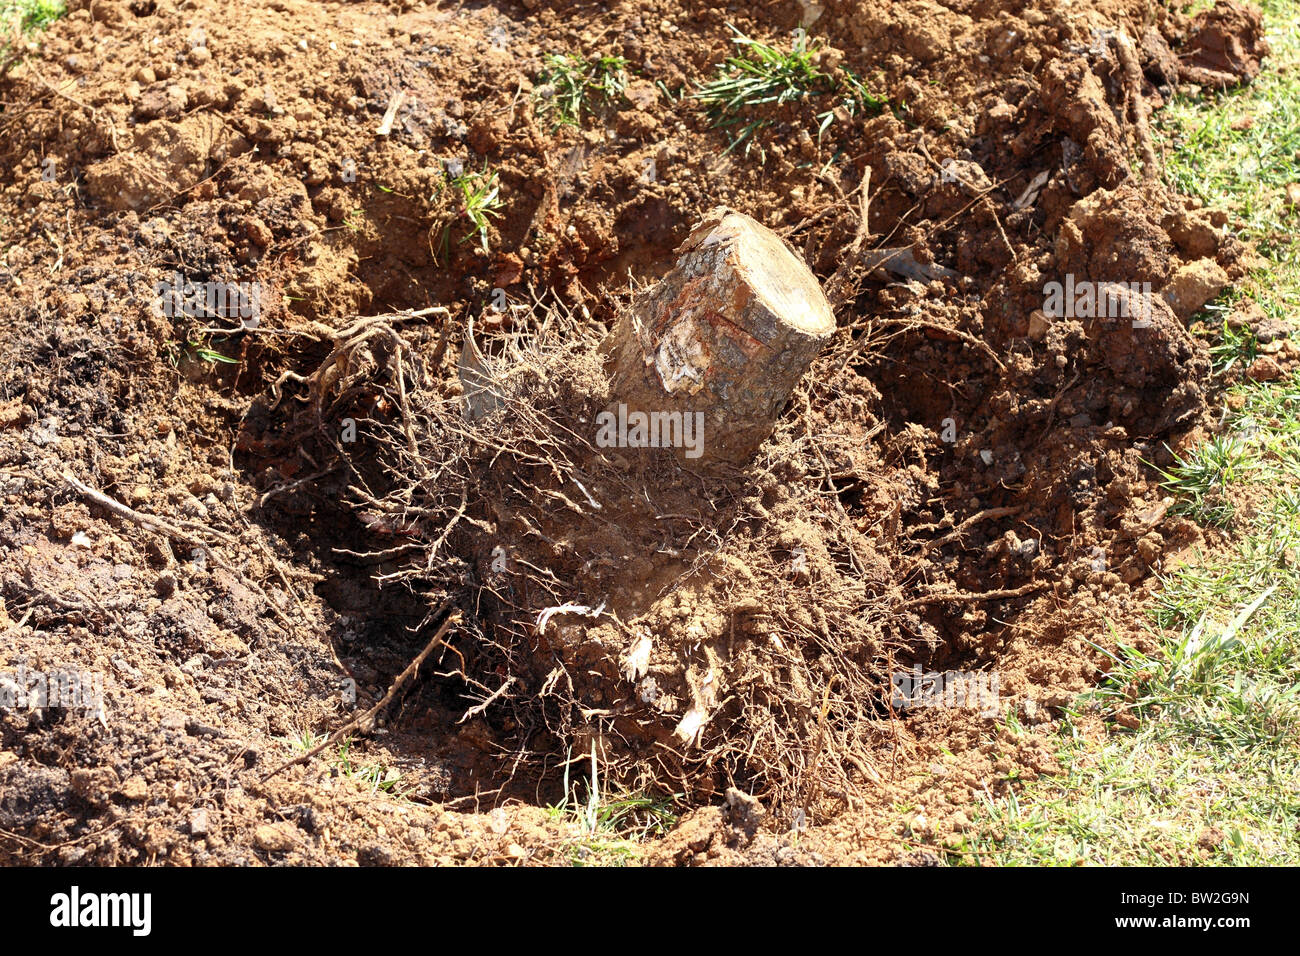 feelled tree roots removed soil sand on garden nature consevation metaphor - Stock Image